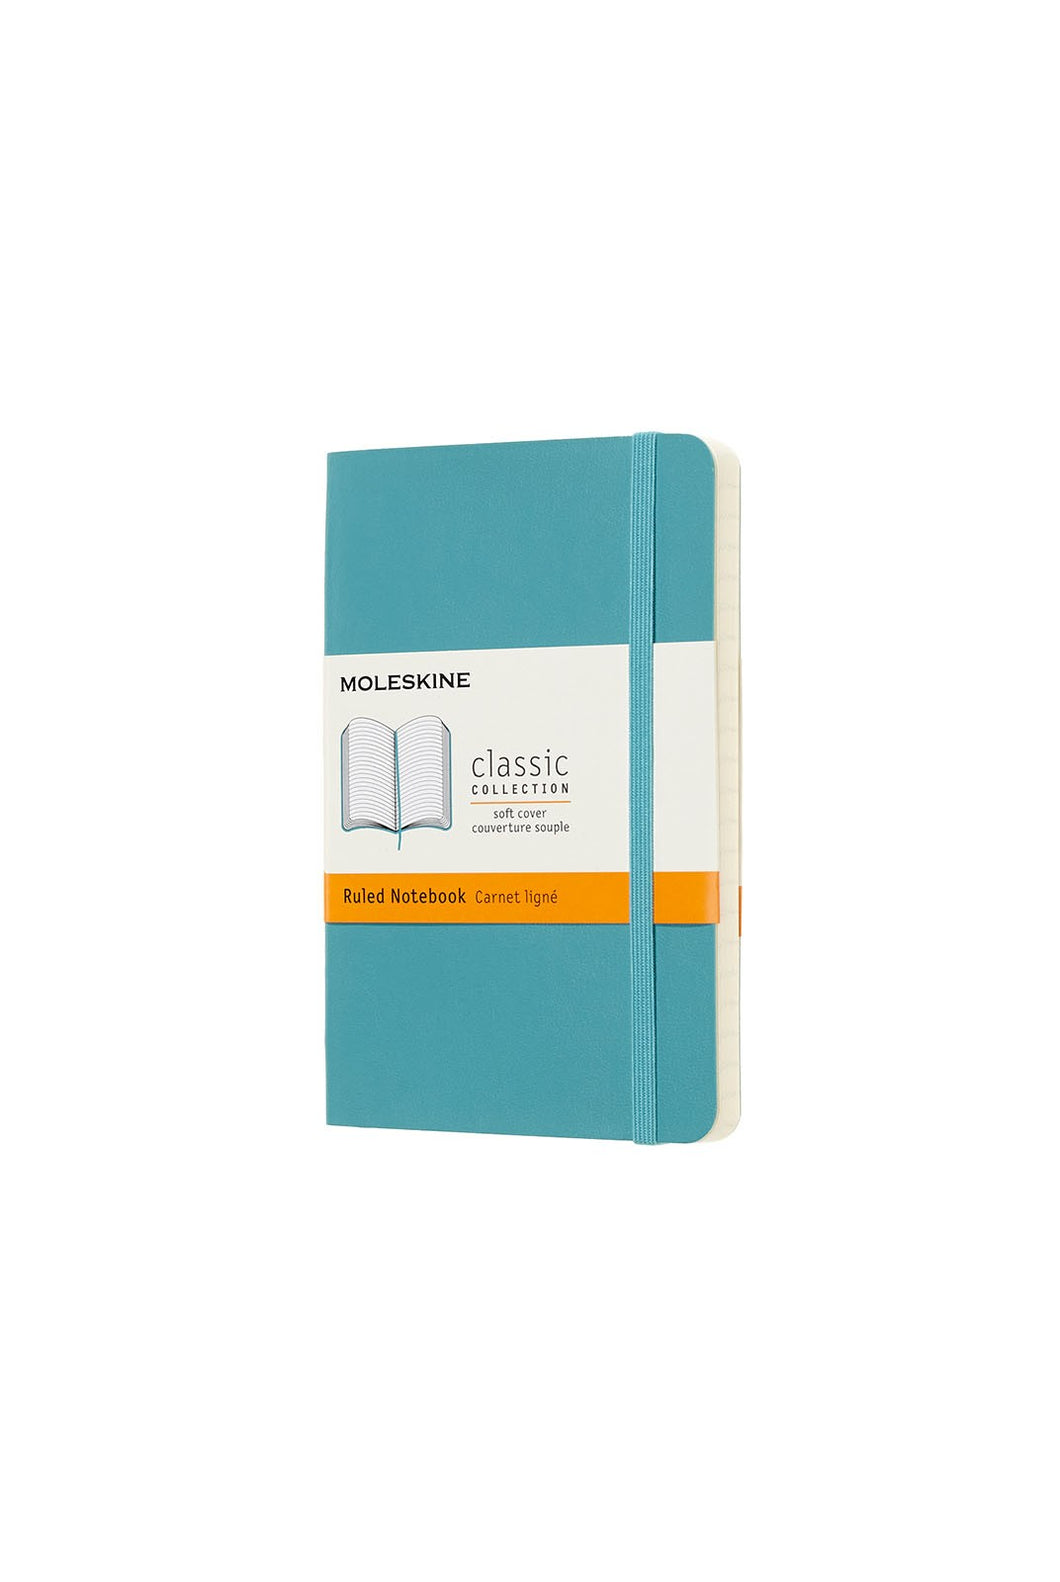 Moleskine - Classic Soft Cover Notebook - Ruled - Pocket (9x14cm) - Reef Blue